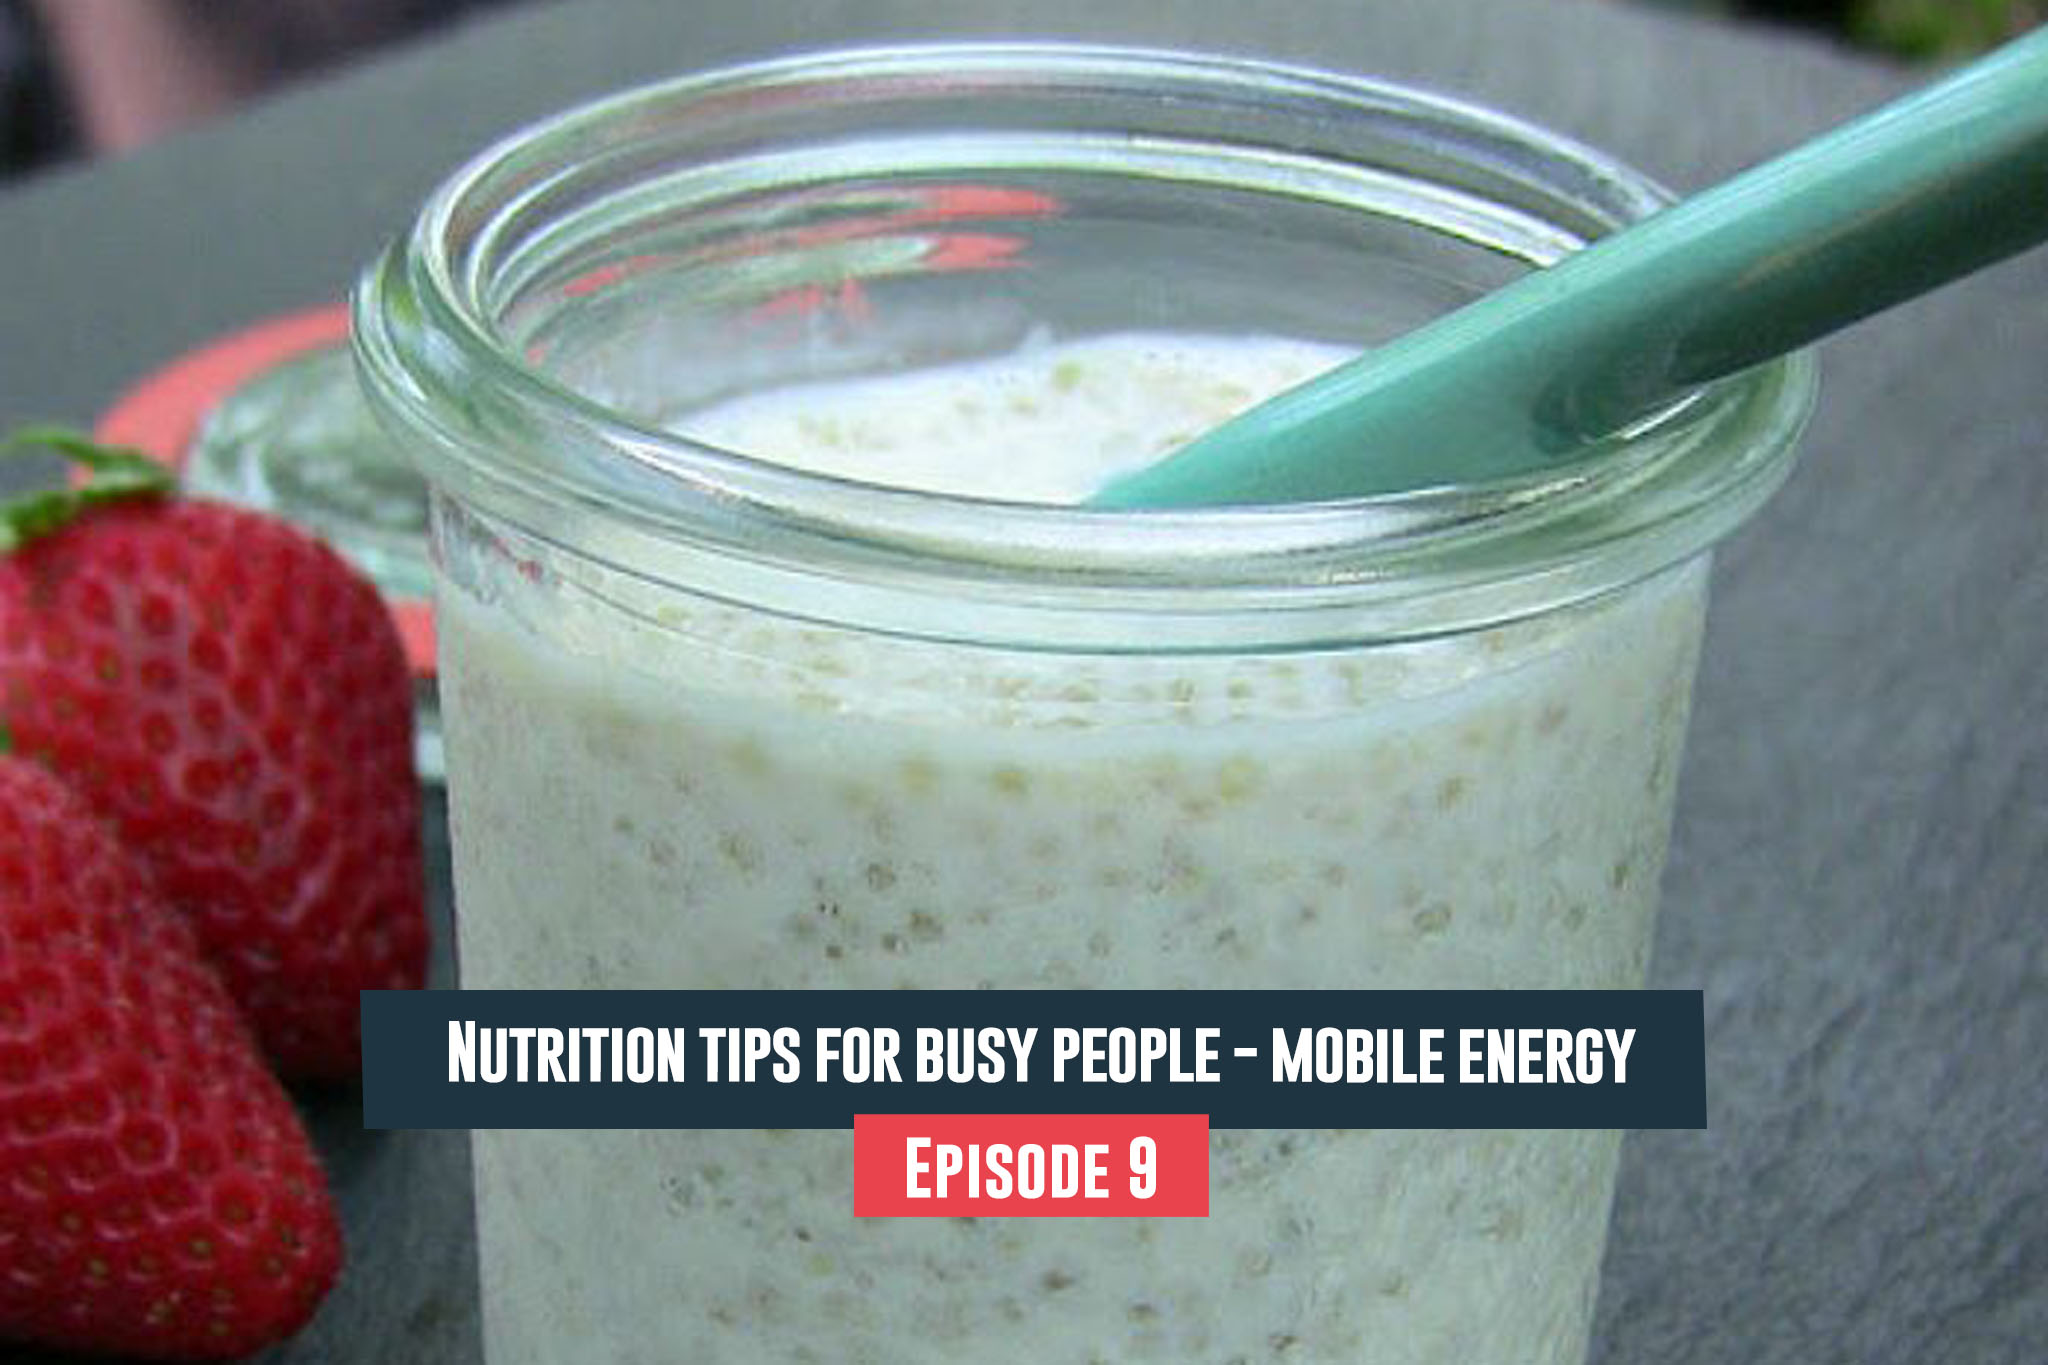 Nutrition tips for busy people